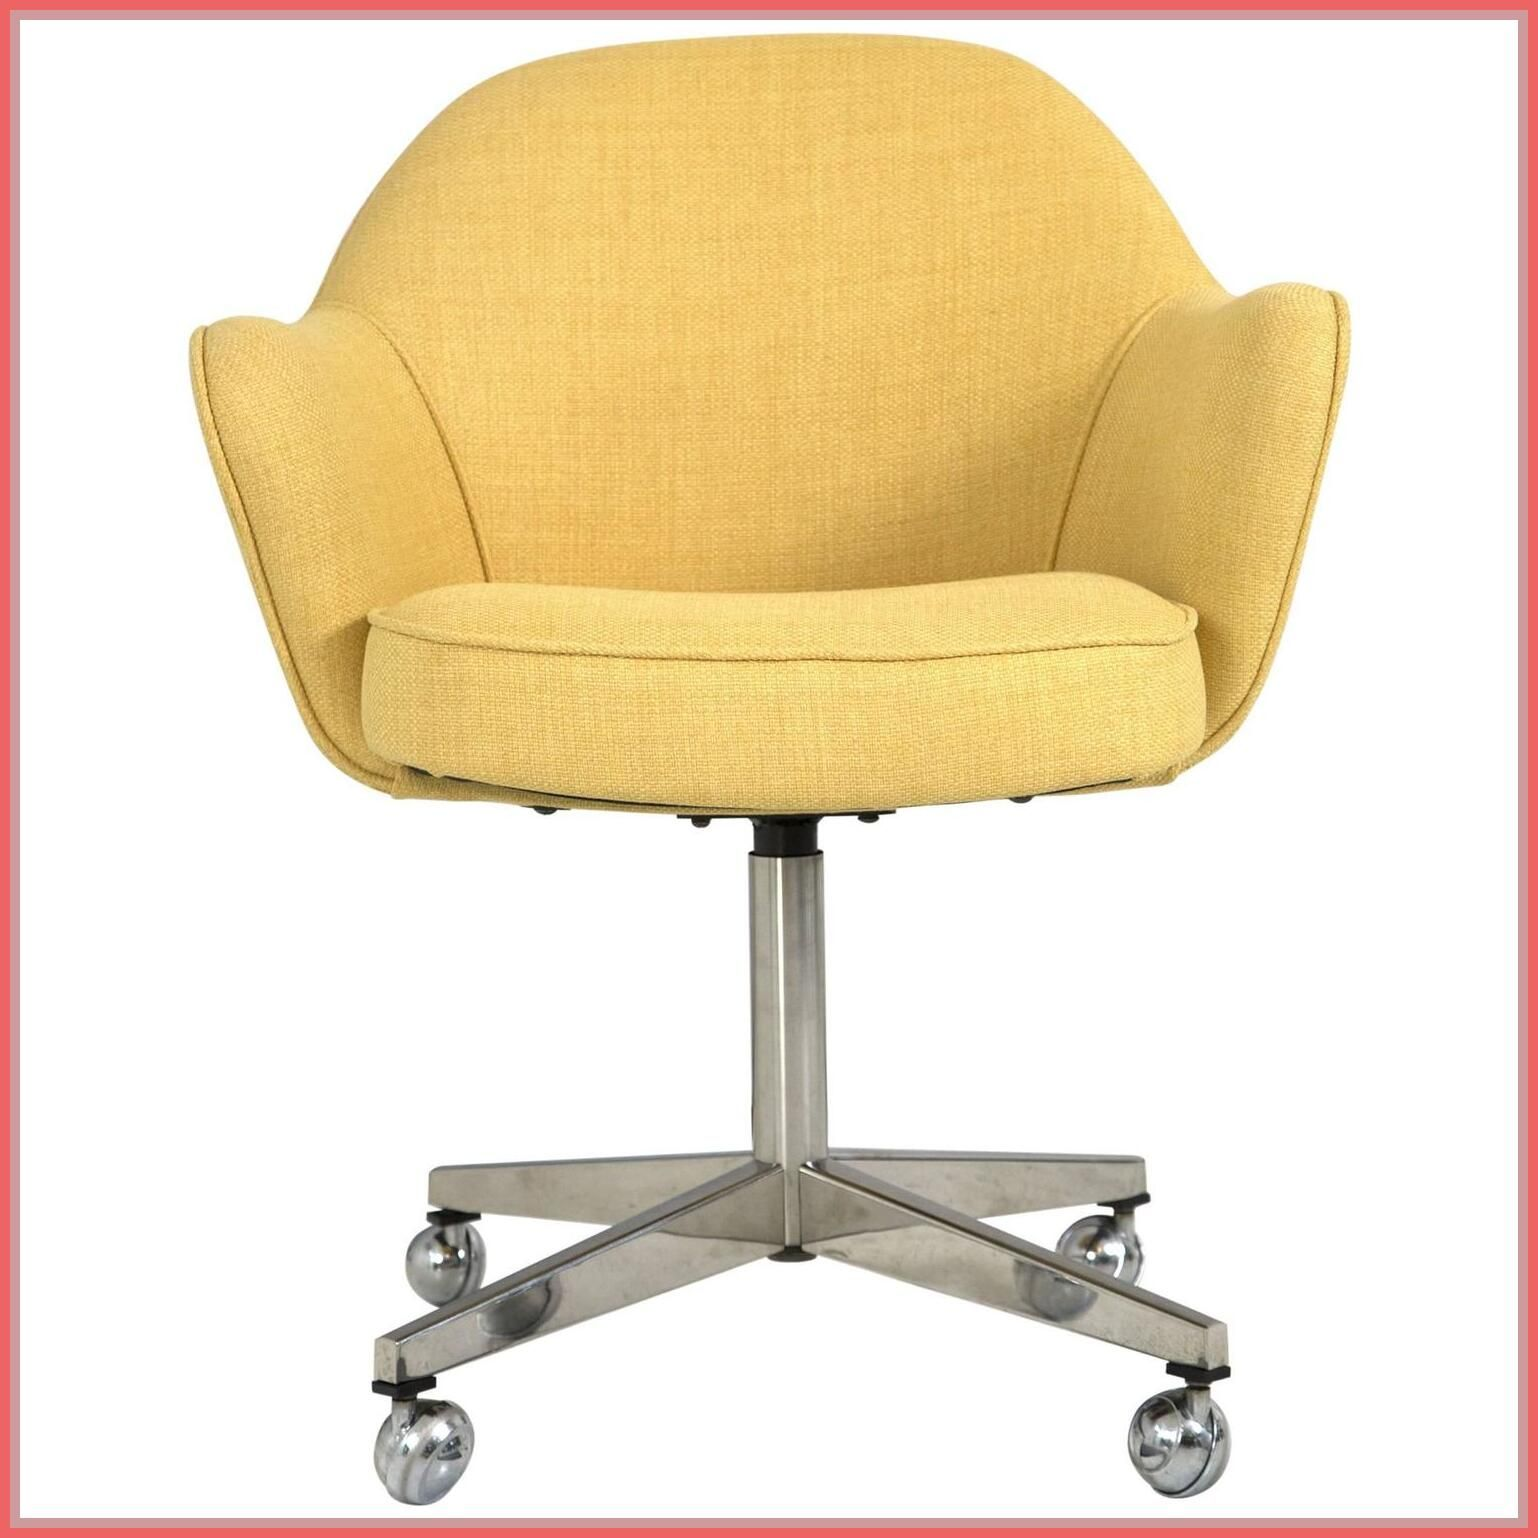 40 Reference Of Yellow Desk Chair Cheap In 2020 Cheap Desk